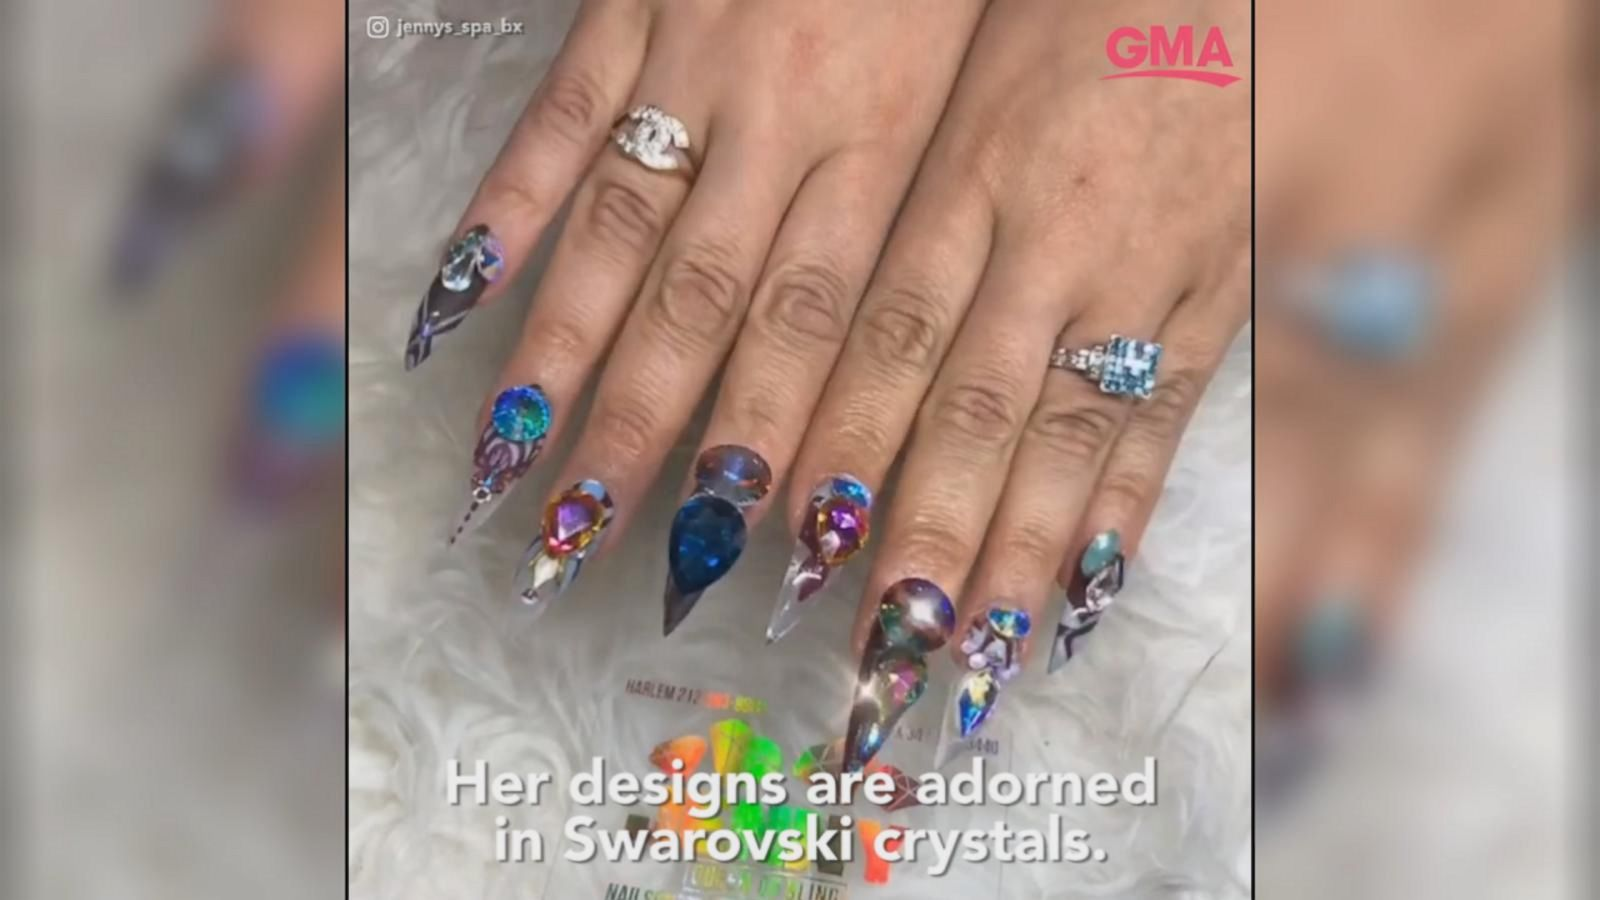 Meet the \'Queen of Bling\' behind Cardi B\'s elaborate manicure - ABC News